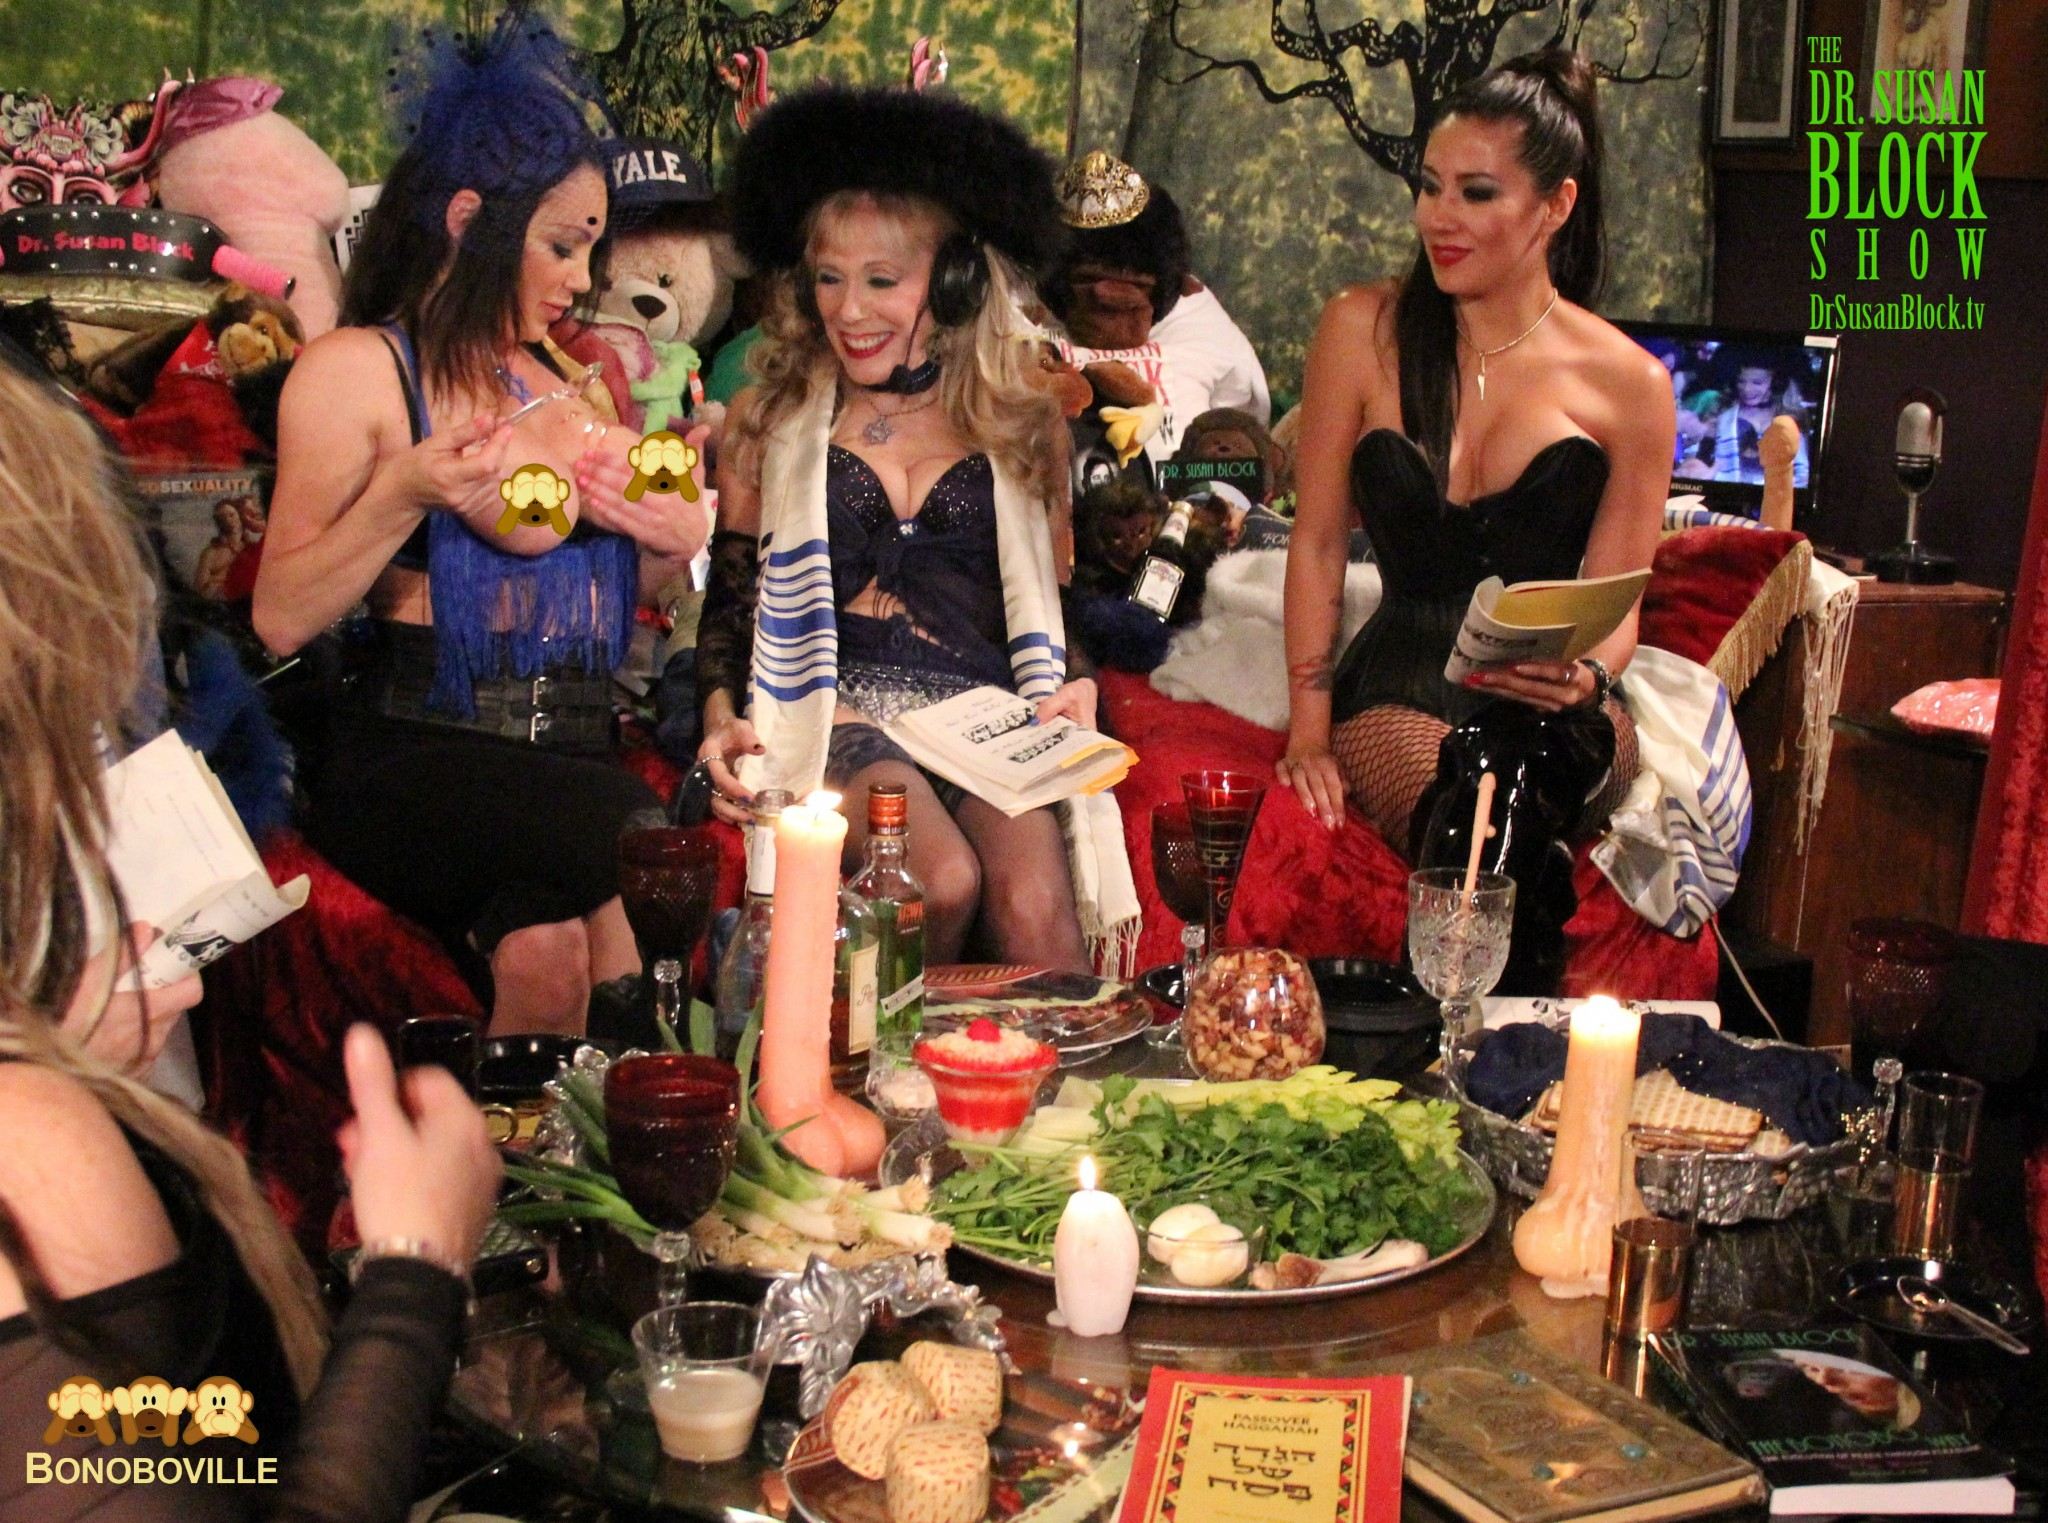 Sexy Seder in Bonoboville for Passover 2016